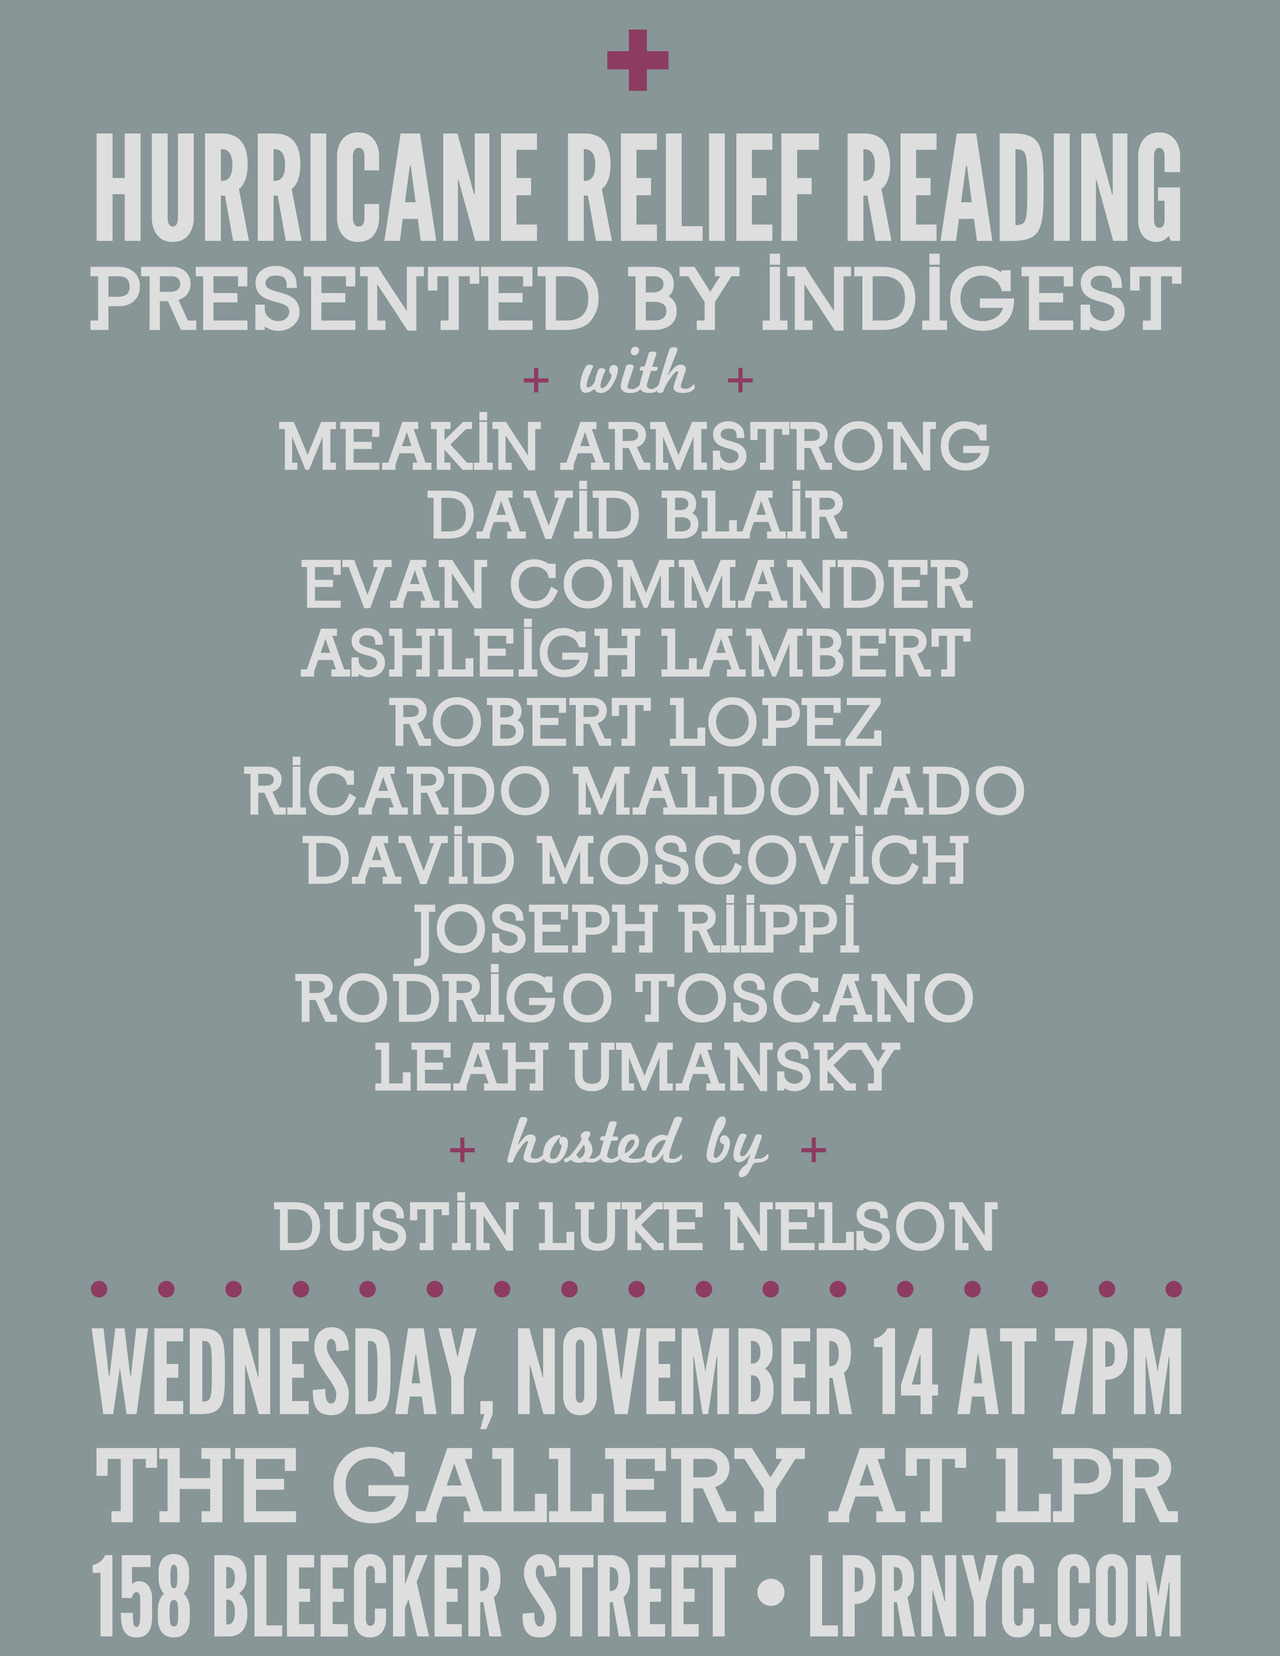 InDigest is throwing a relief benefit for victims of Hurricane Sandy. The reading is free to attend, but they'll be taking donations at the door and donating 15% of the bar to relief efforts. There will also be a book table with tons of books from authors who are reading and many who are not. 100% of proceeds on the books will benefit victims of the hurricane. Books will be available fromKay Ryan (signed), Joseph Riippi, Courtney Elizabeth Mauk (signed), Brad Liening, Leigh Stein (signed), Robert Gibbons, Leah Umansky, InDigest Editions, and more. Readers include Meakin Armstrong, David Blair, Evan Commander, Ashleigh Lambert, Robert Lopez, Ricardo Maldonado, David Moscovich, Dustin Luke Nelson, Joseph Riippi, Rodrigo Toscaño, Leah Umansky, and more.